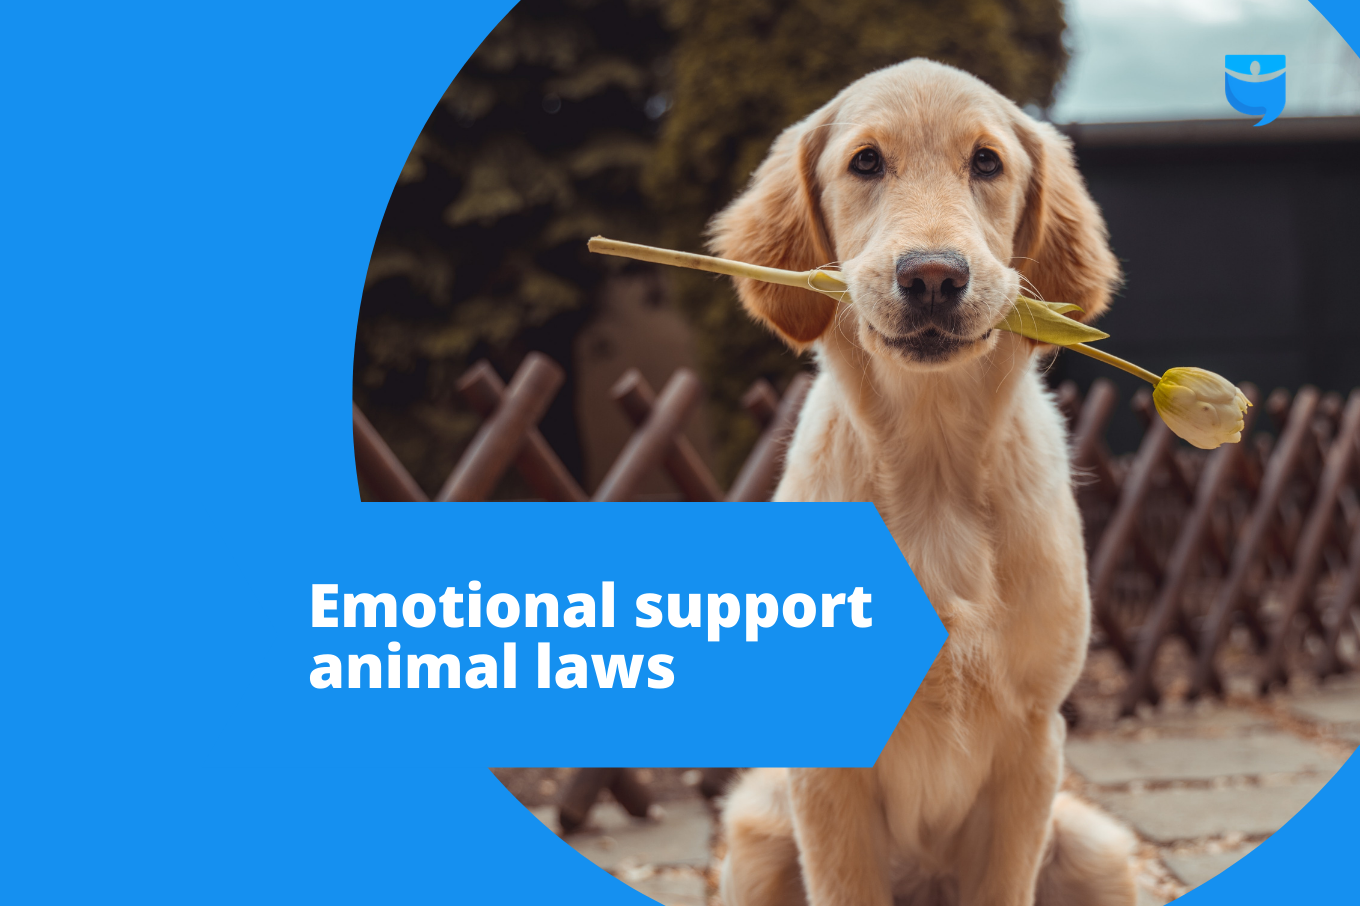 Do Landlords Have to Allow Emotional Support Animals? Know the Laws